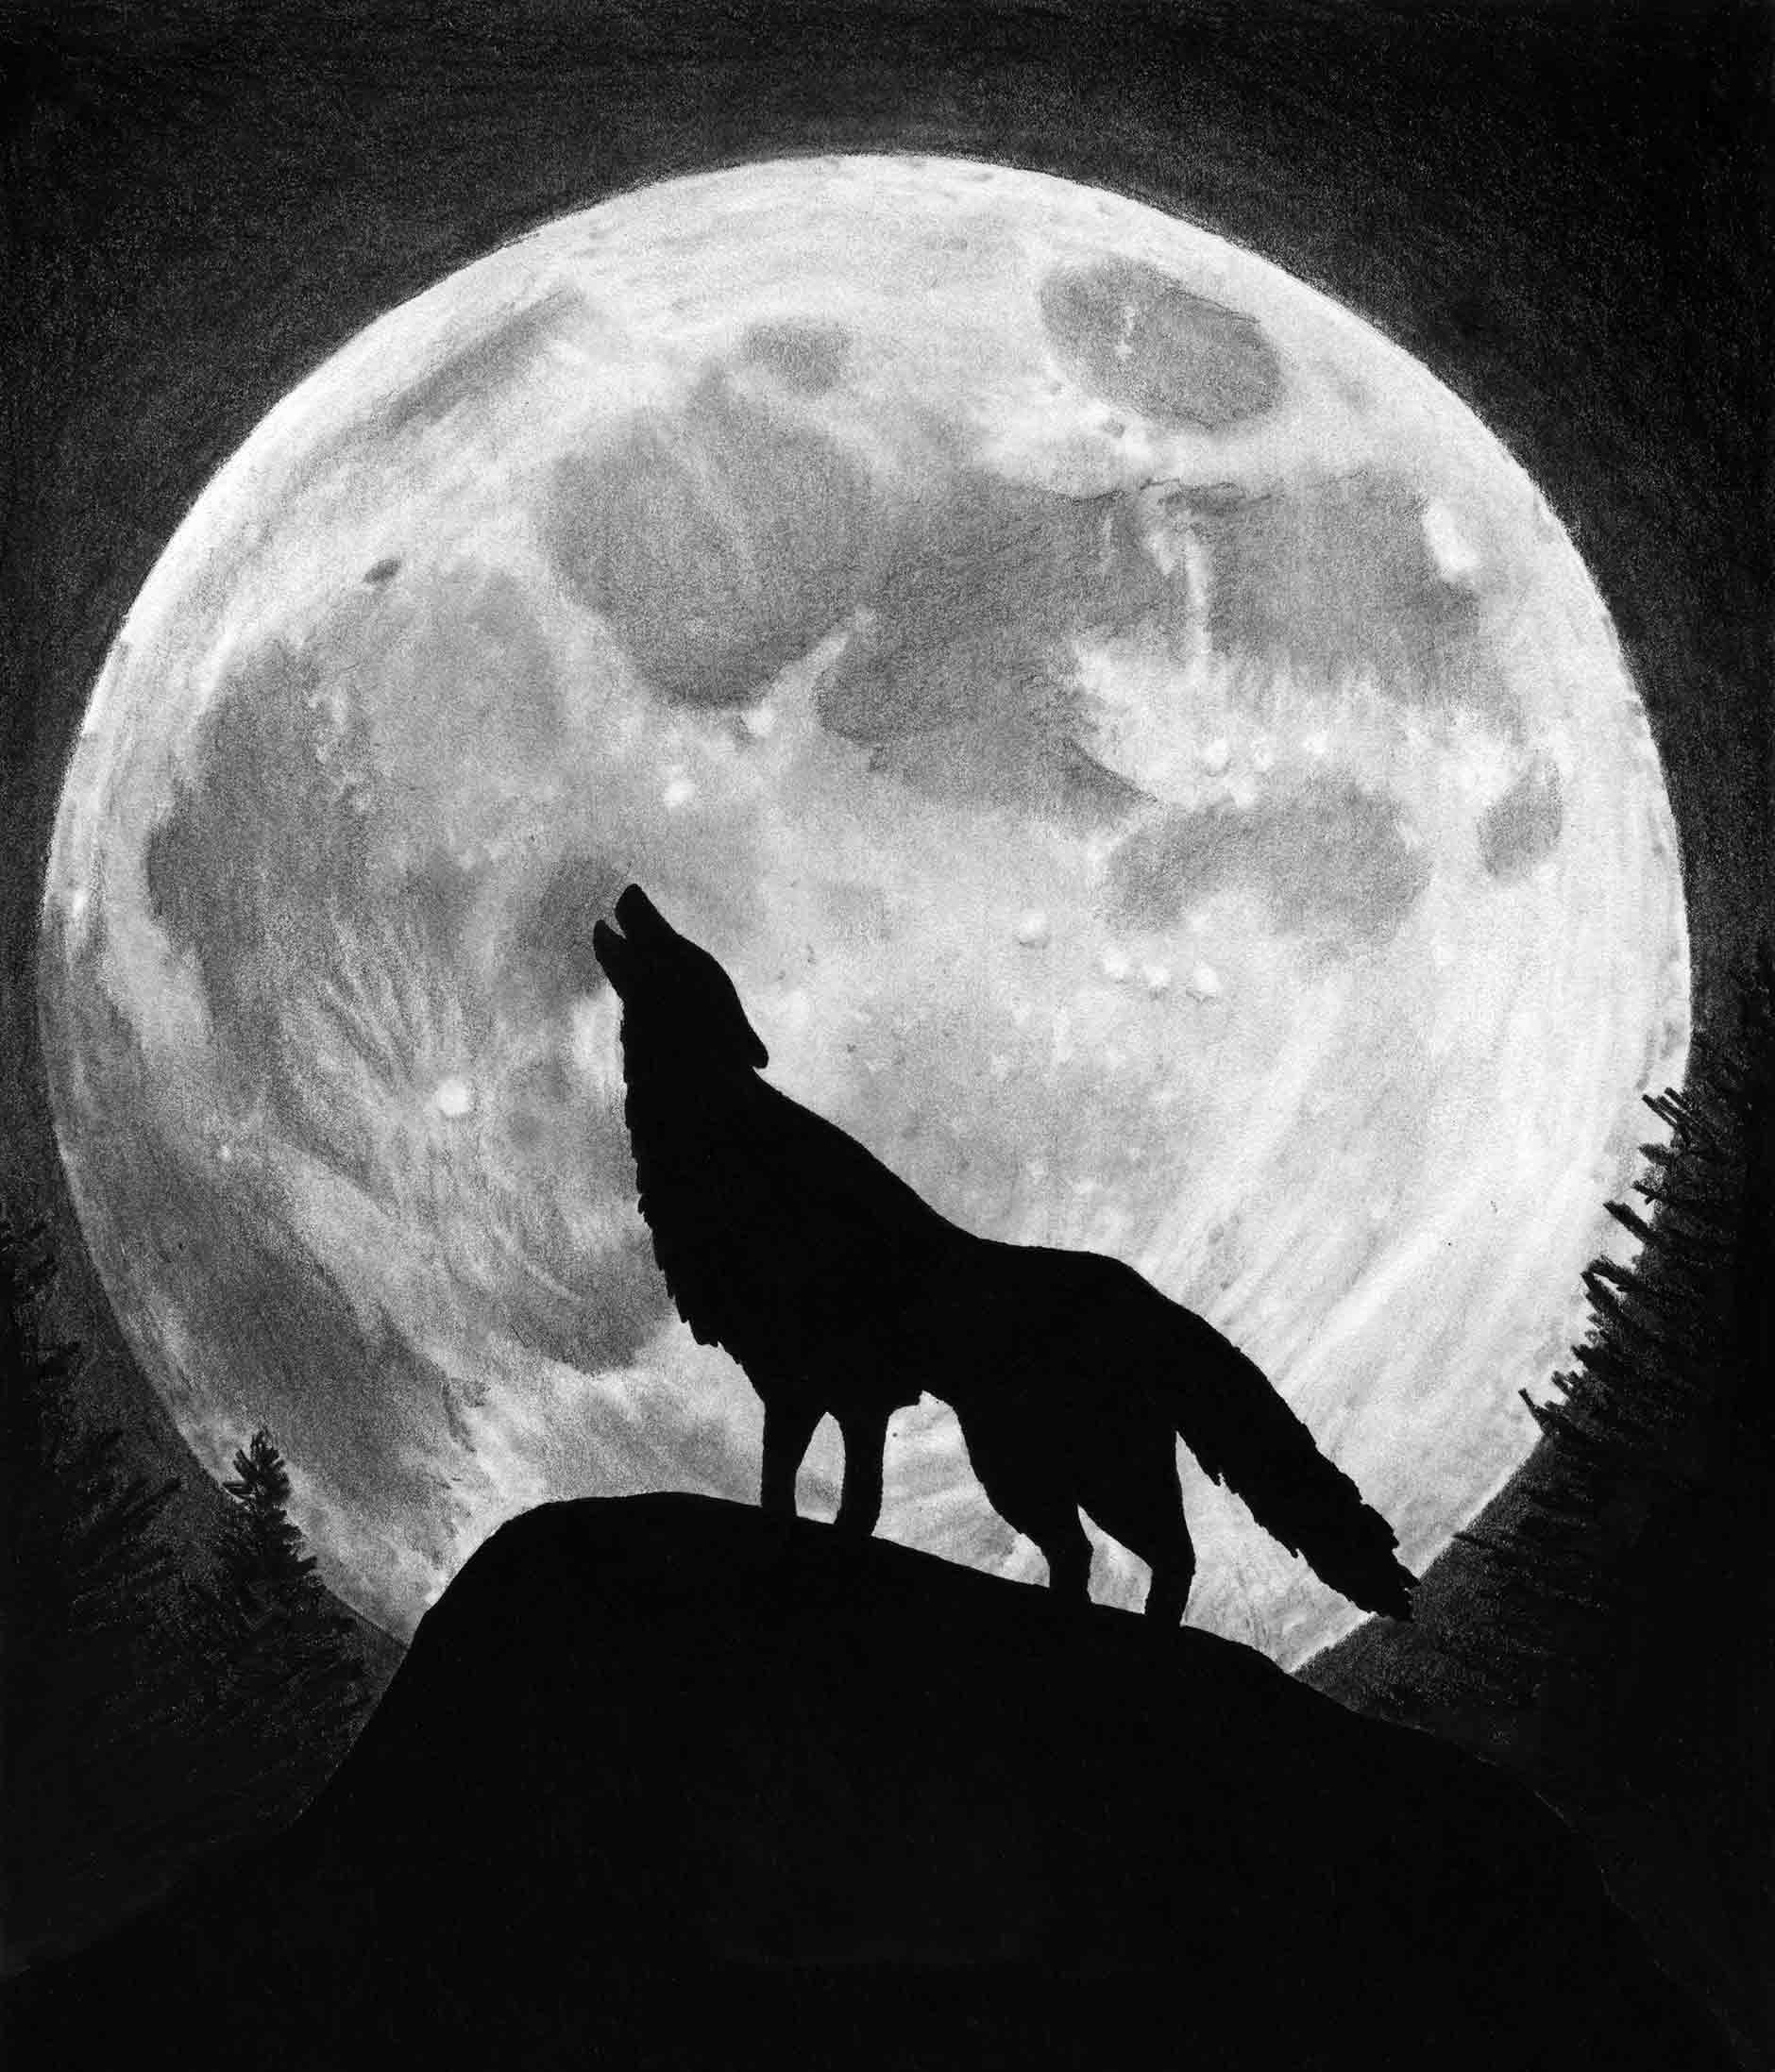 Wolf Iphone Wallpaper: Wolf And Moon Wallpaper